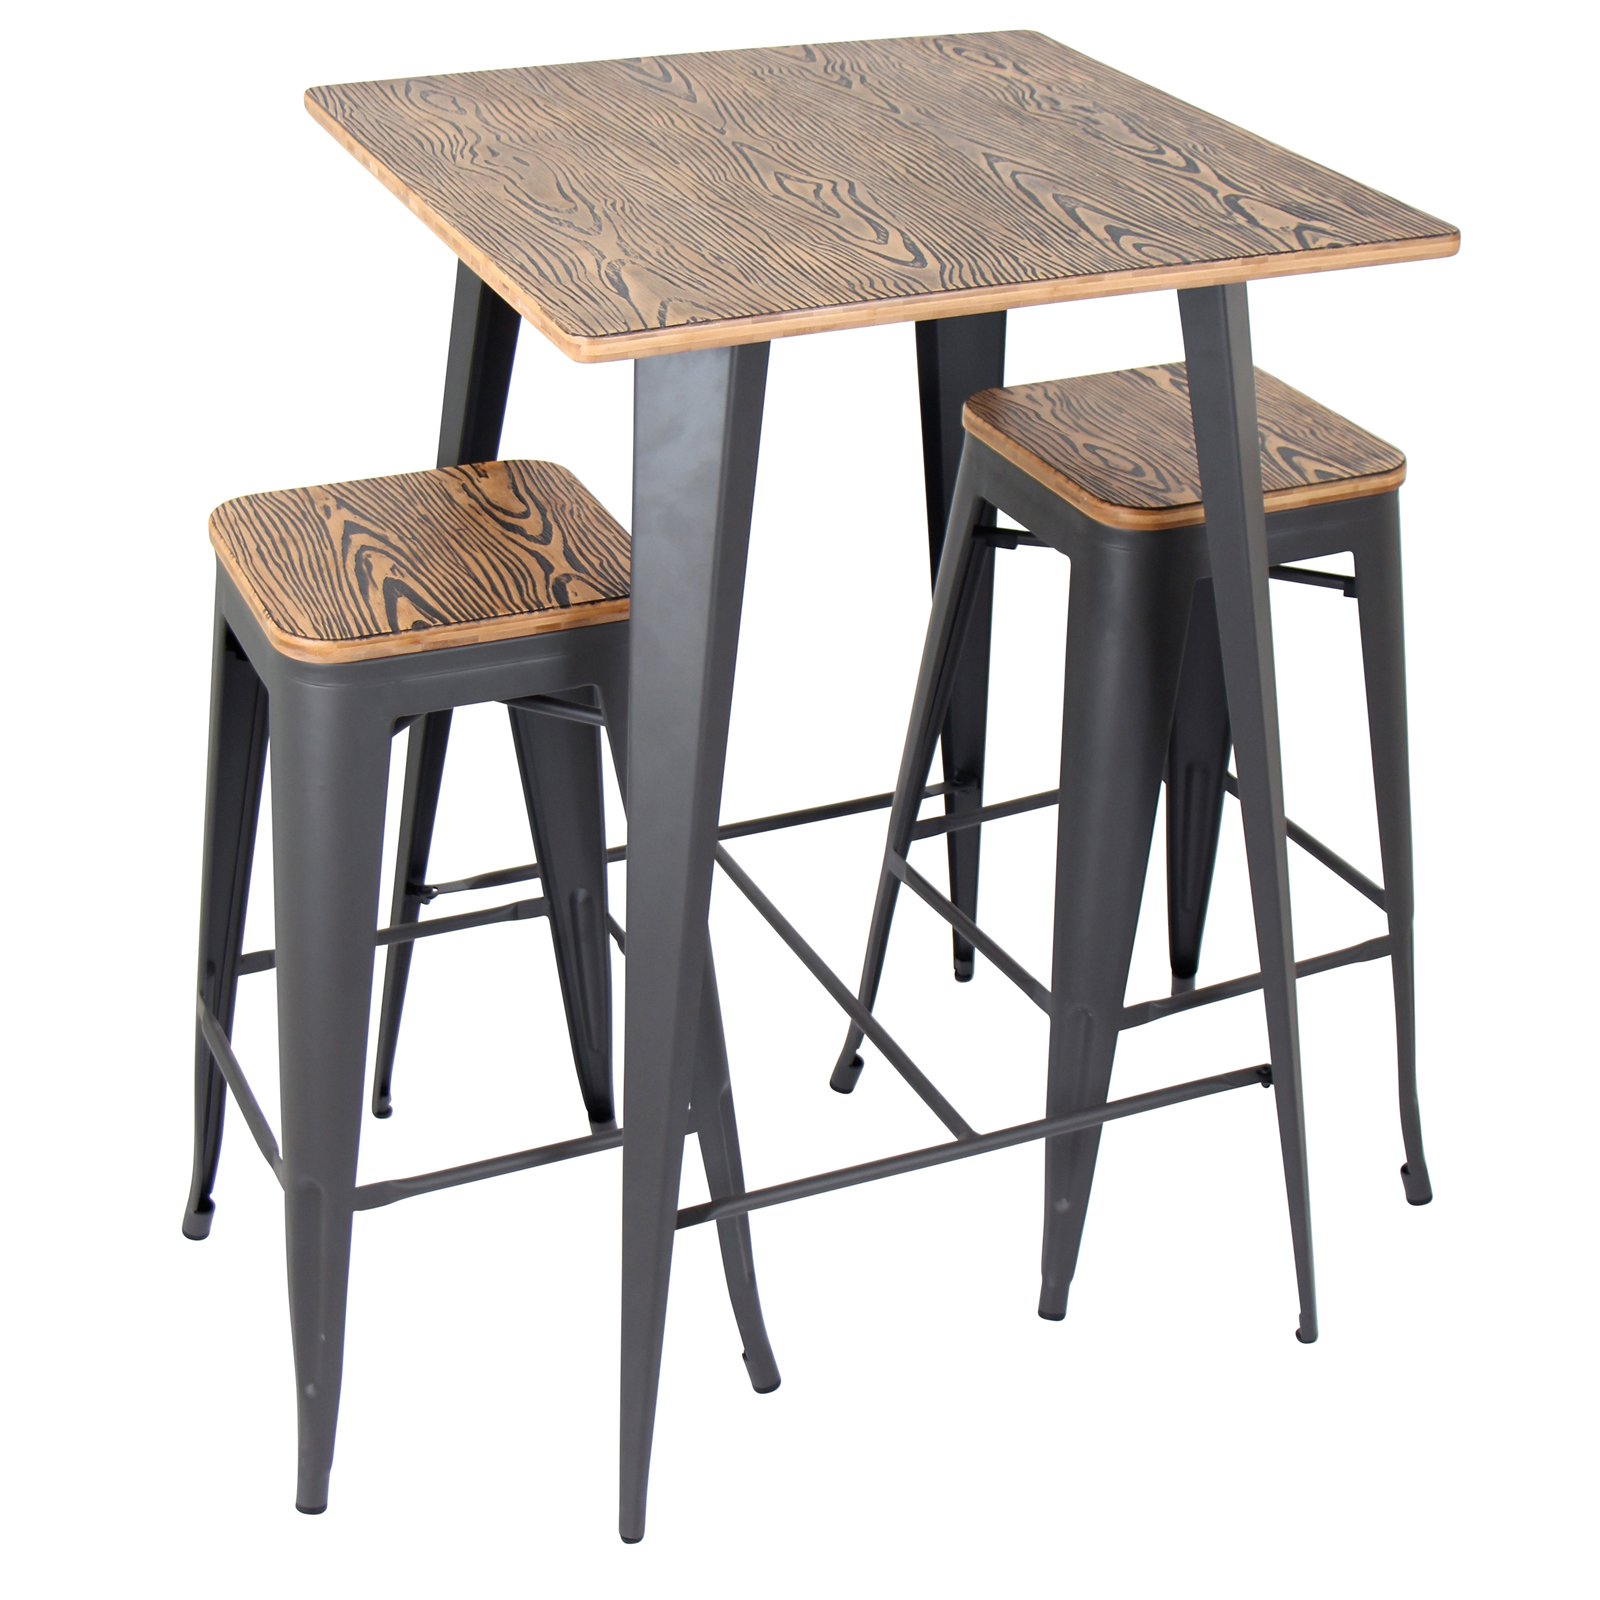 Oregon 3-Piece Industrial Pub Set in Grey and Brown by LumiSource